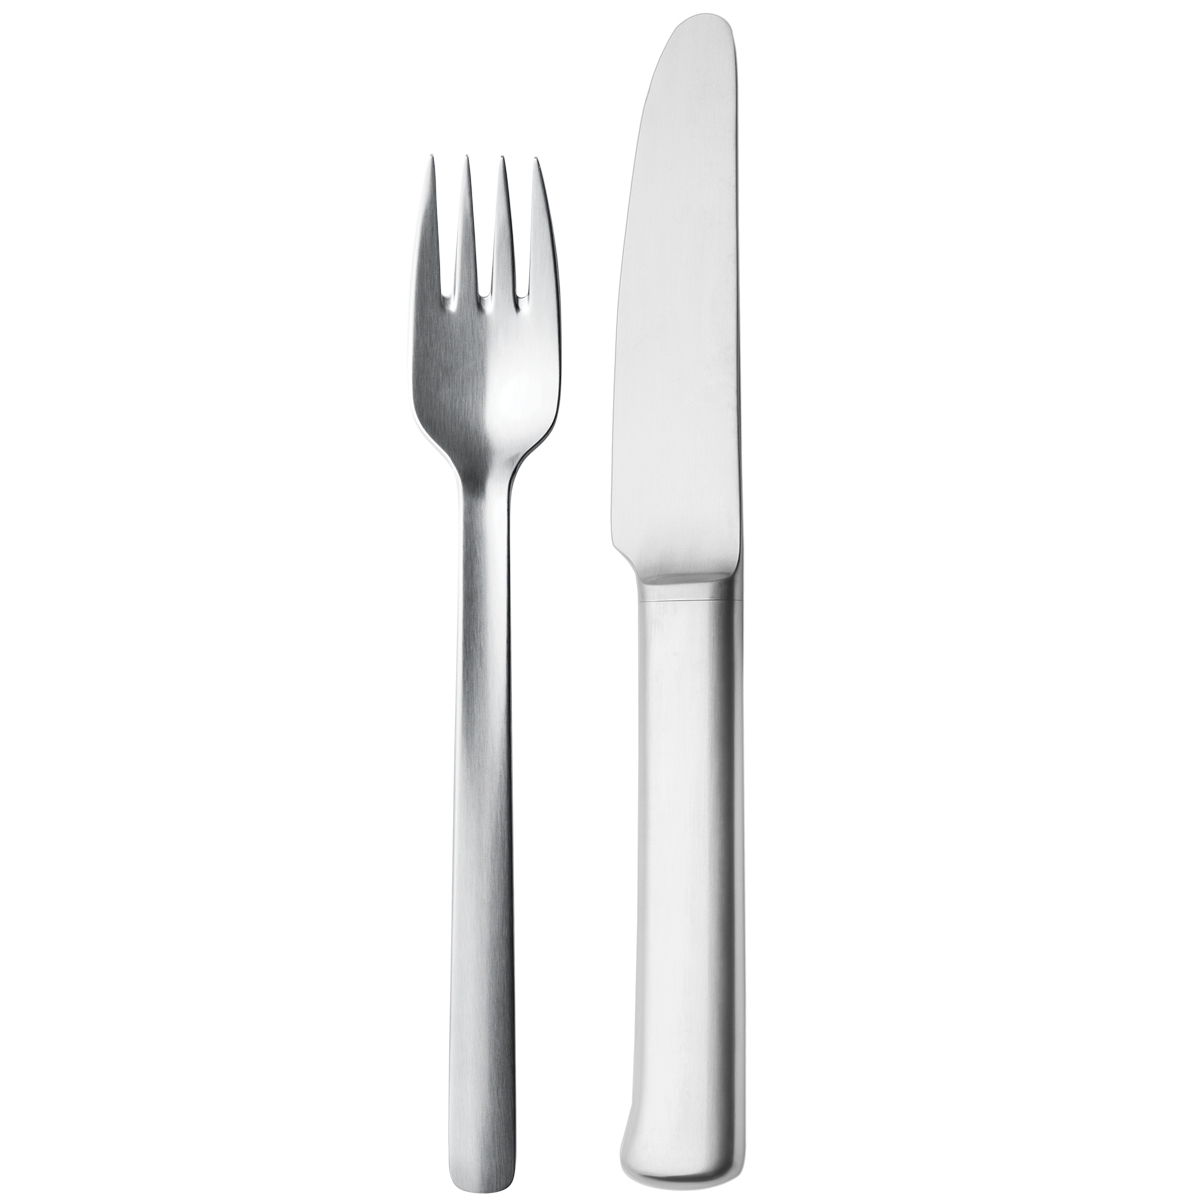 Free Download Images Fork And Knife image #3665